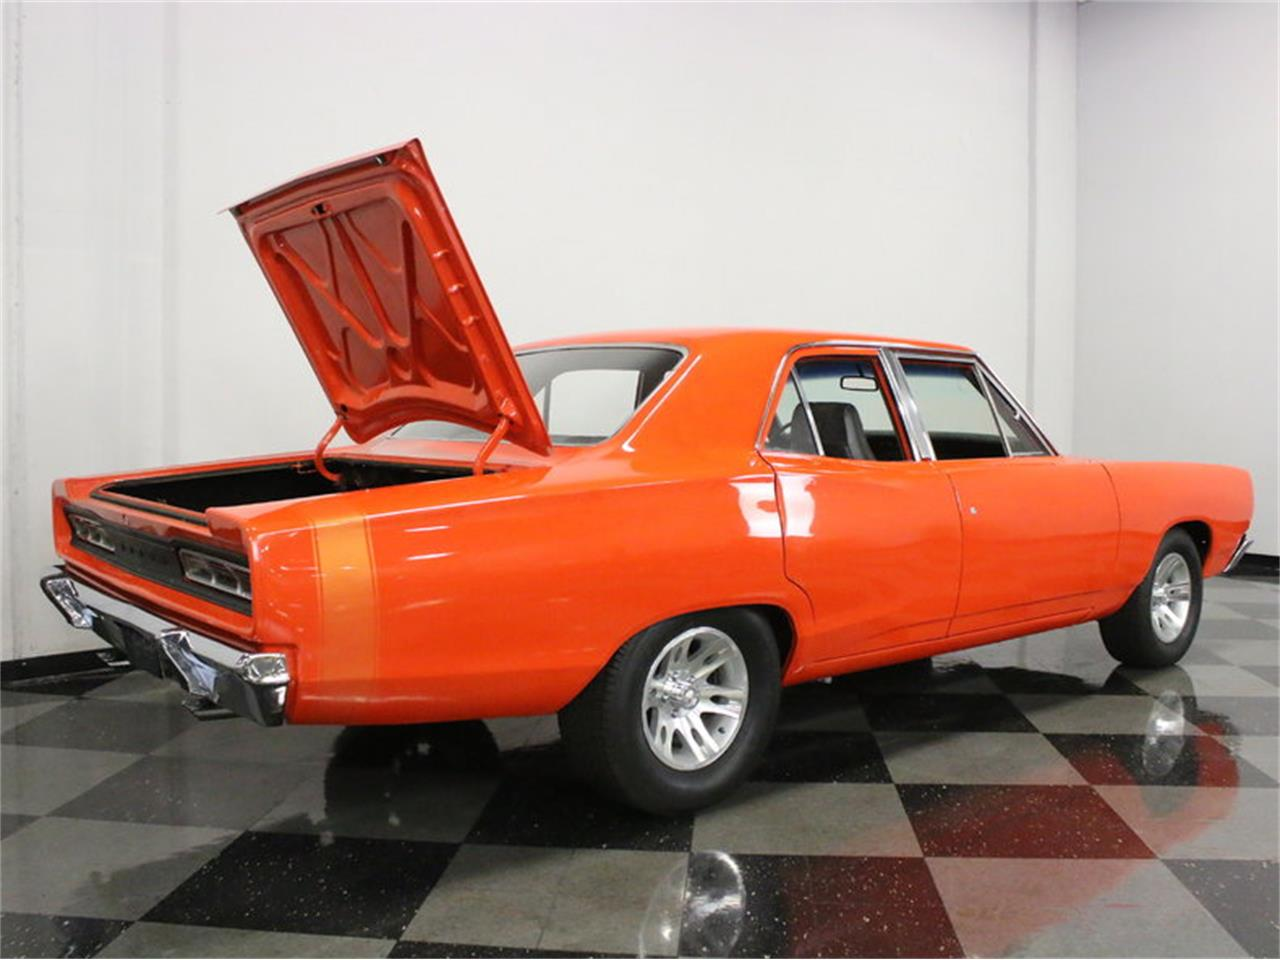 Large Picture of '69 Dodge Coronet located in Texas - $12,995.00 Offered by Streetside Classics - Dallas / Fort Worth - L5NW